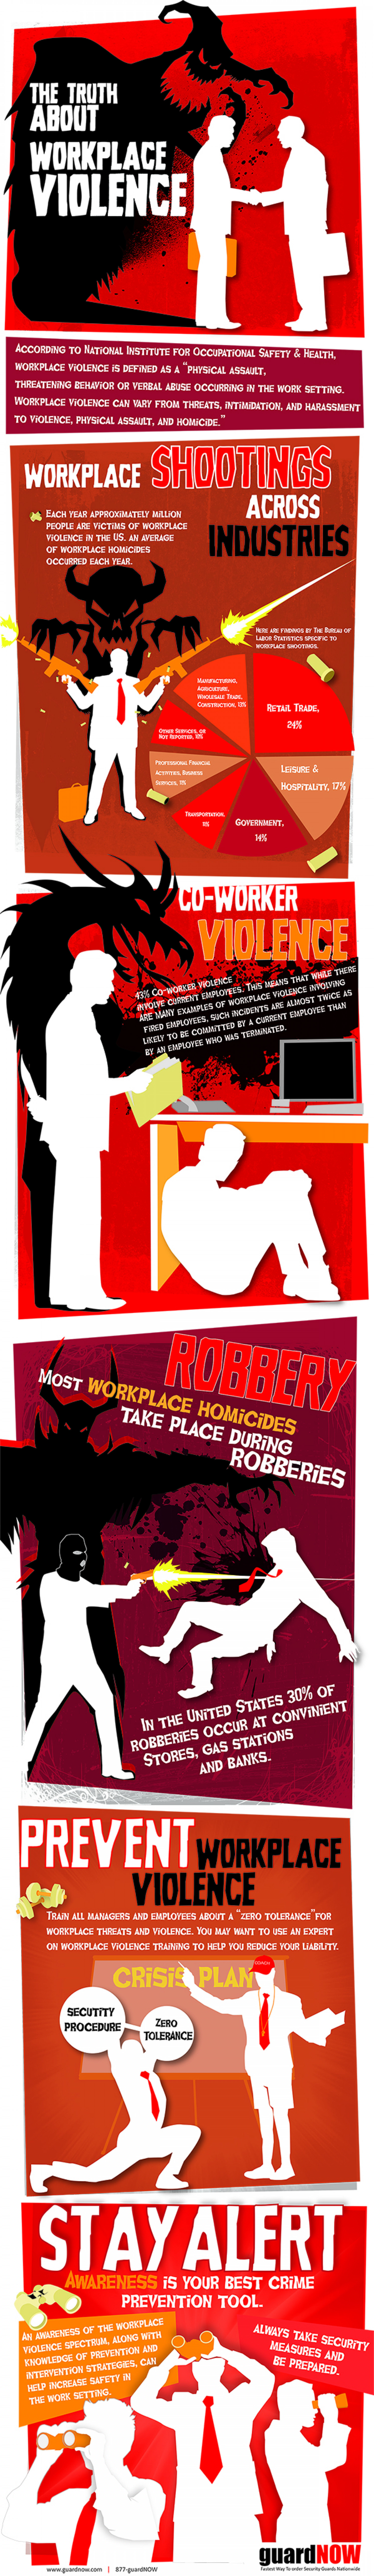 The Truth About Workplace Violence Infographic